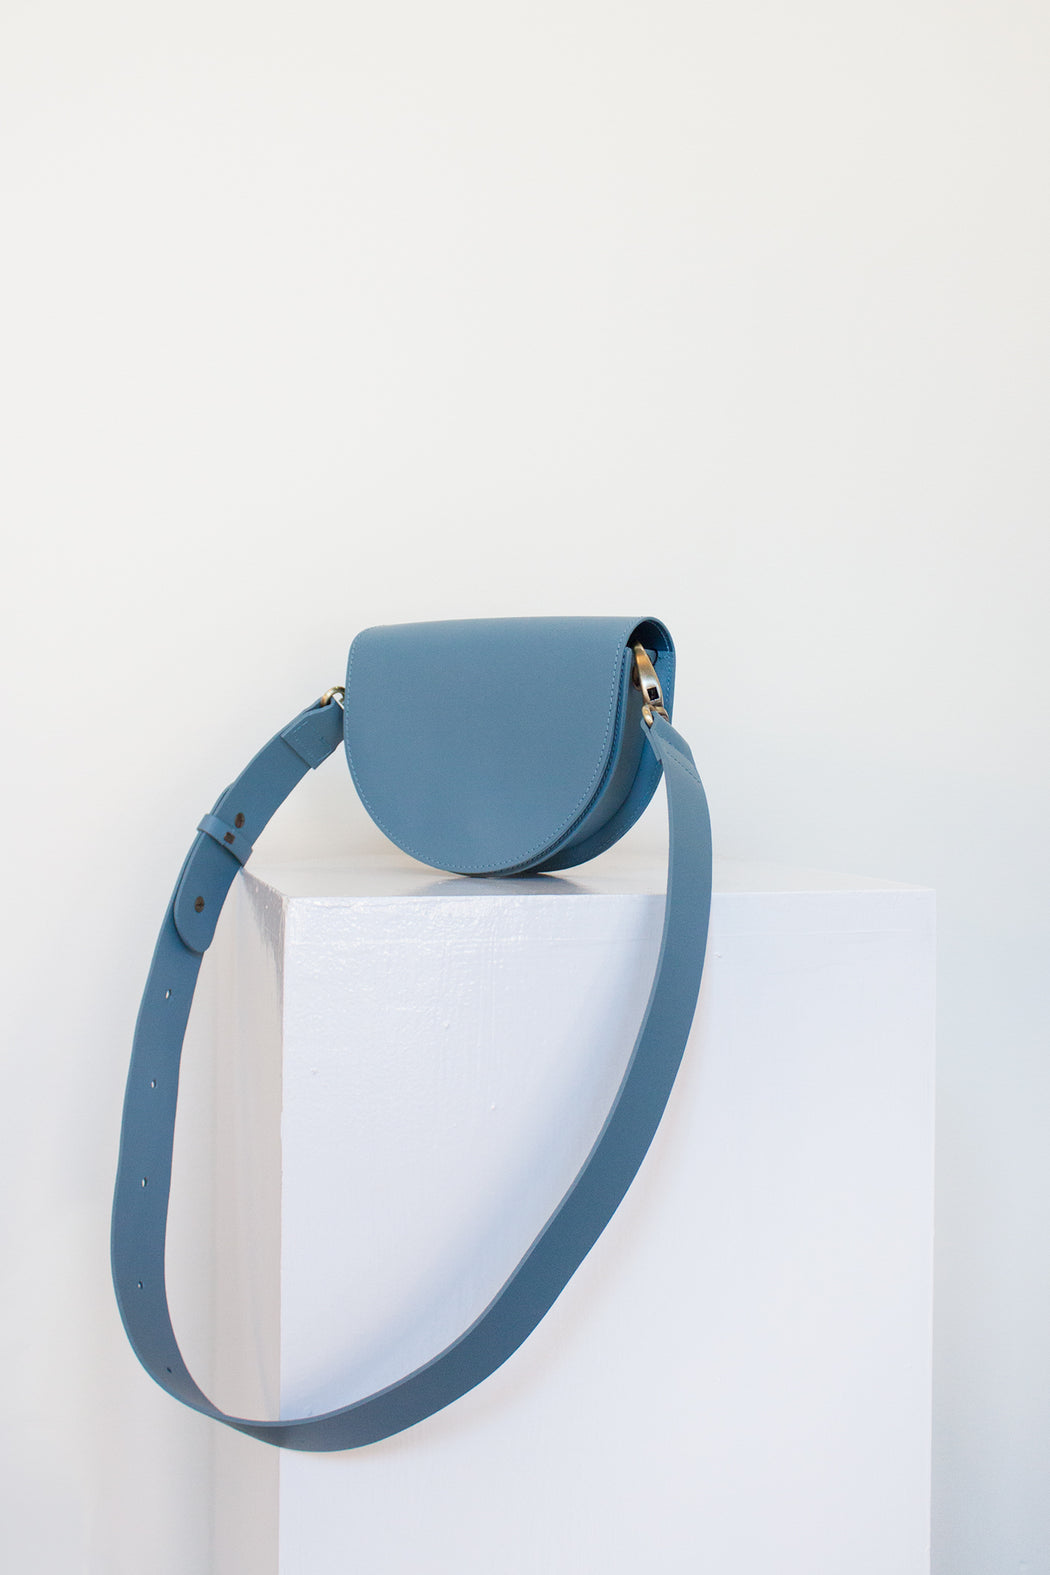 Vere Verto Leather Goods | Luna Sky | Hazel & Rose